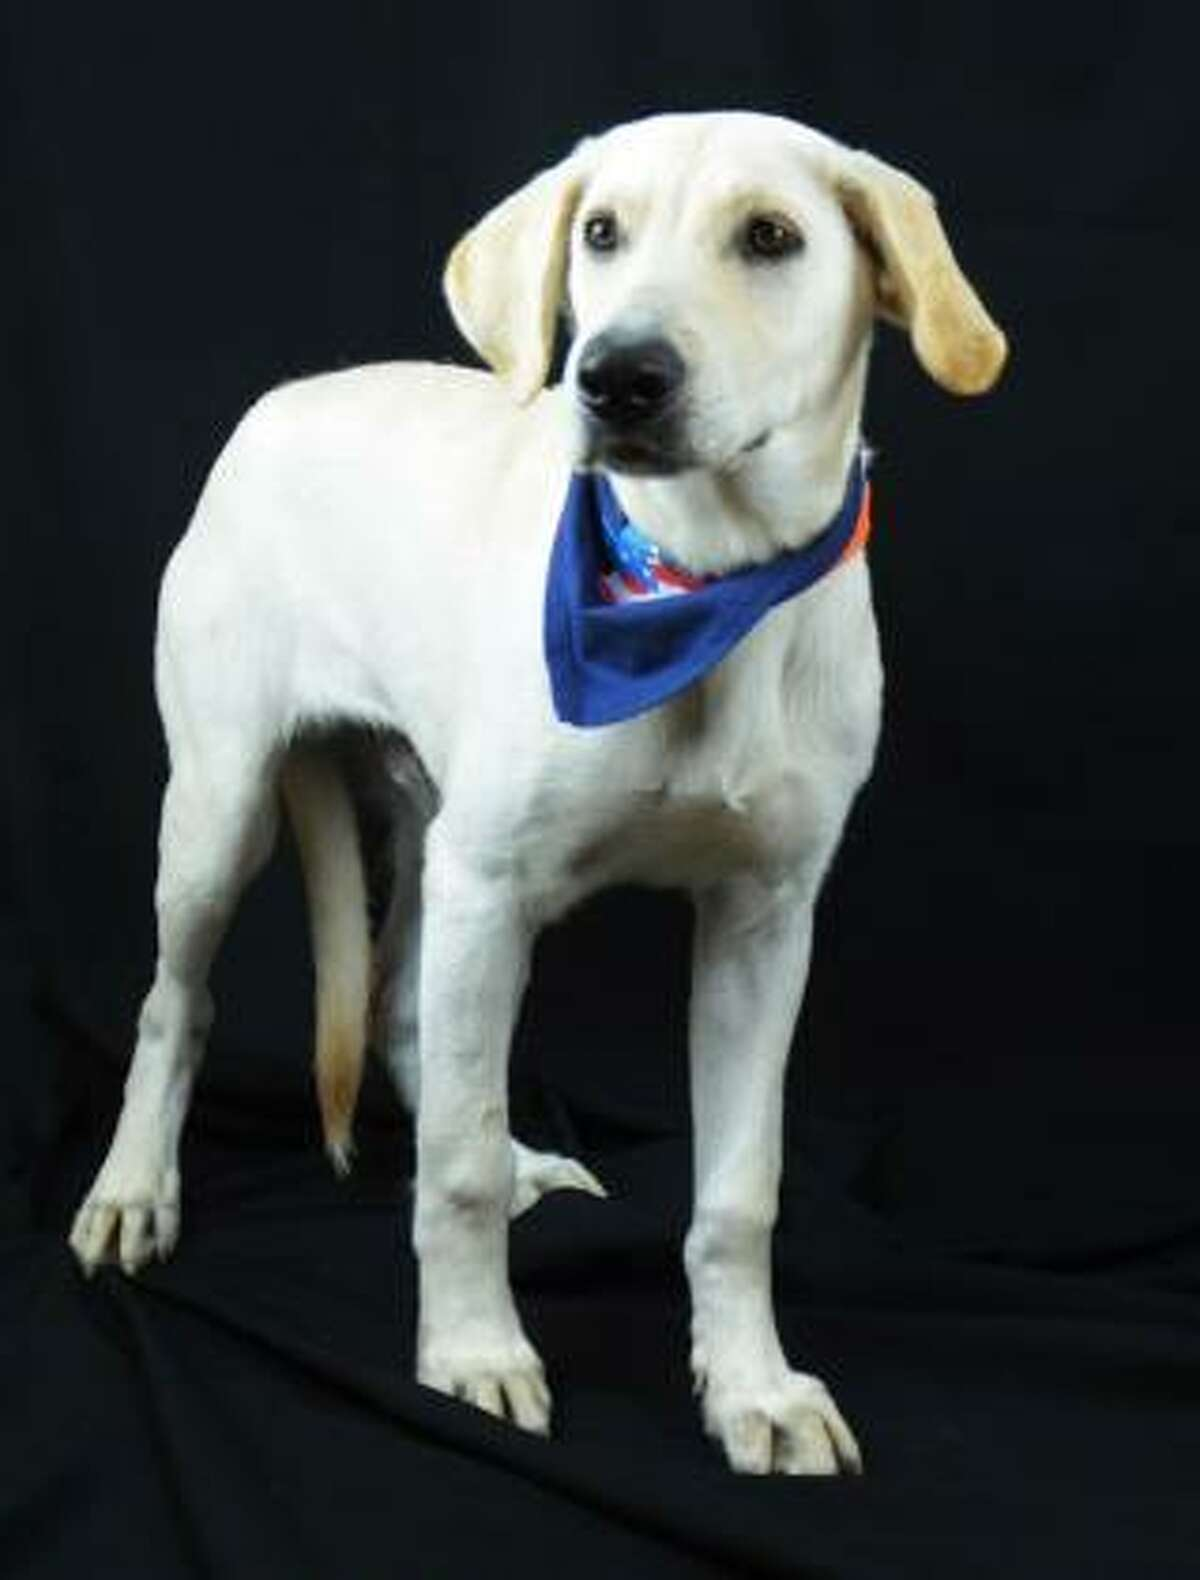 Bucky's a 6 month old lab mix looking for a new home. This friendly guy gets along with everyone he meets, likes kids, and enjoys playing with other dogs. He's very affectionate and loves toys. This pet is now available for adoption from the Houston Humane Society.